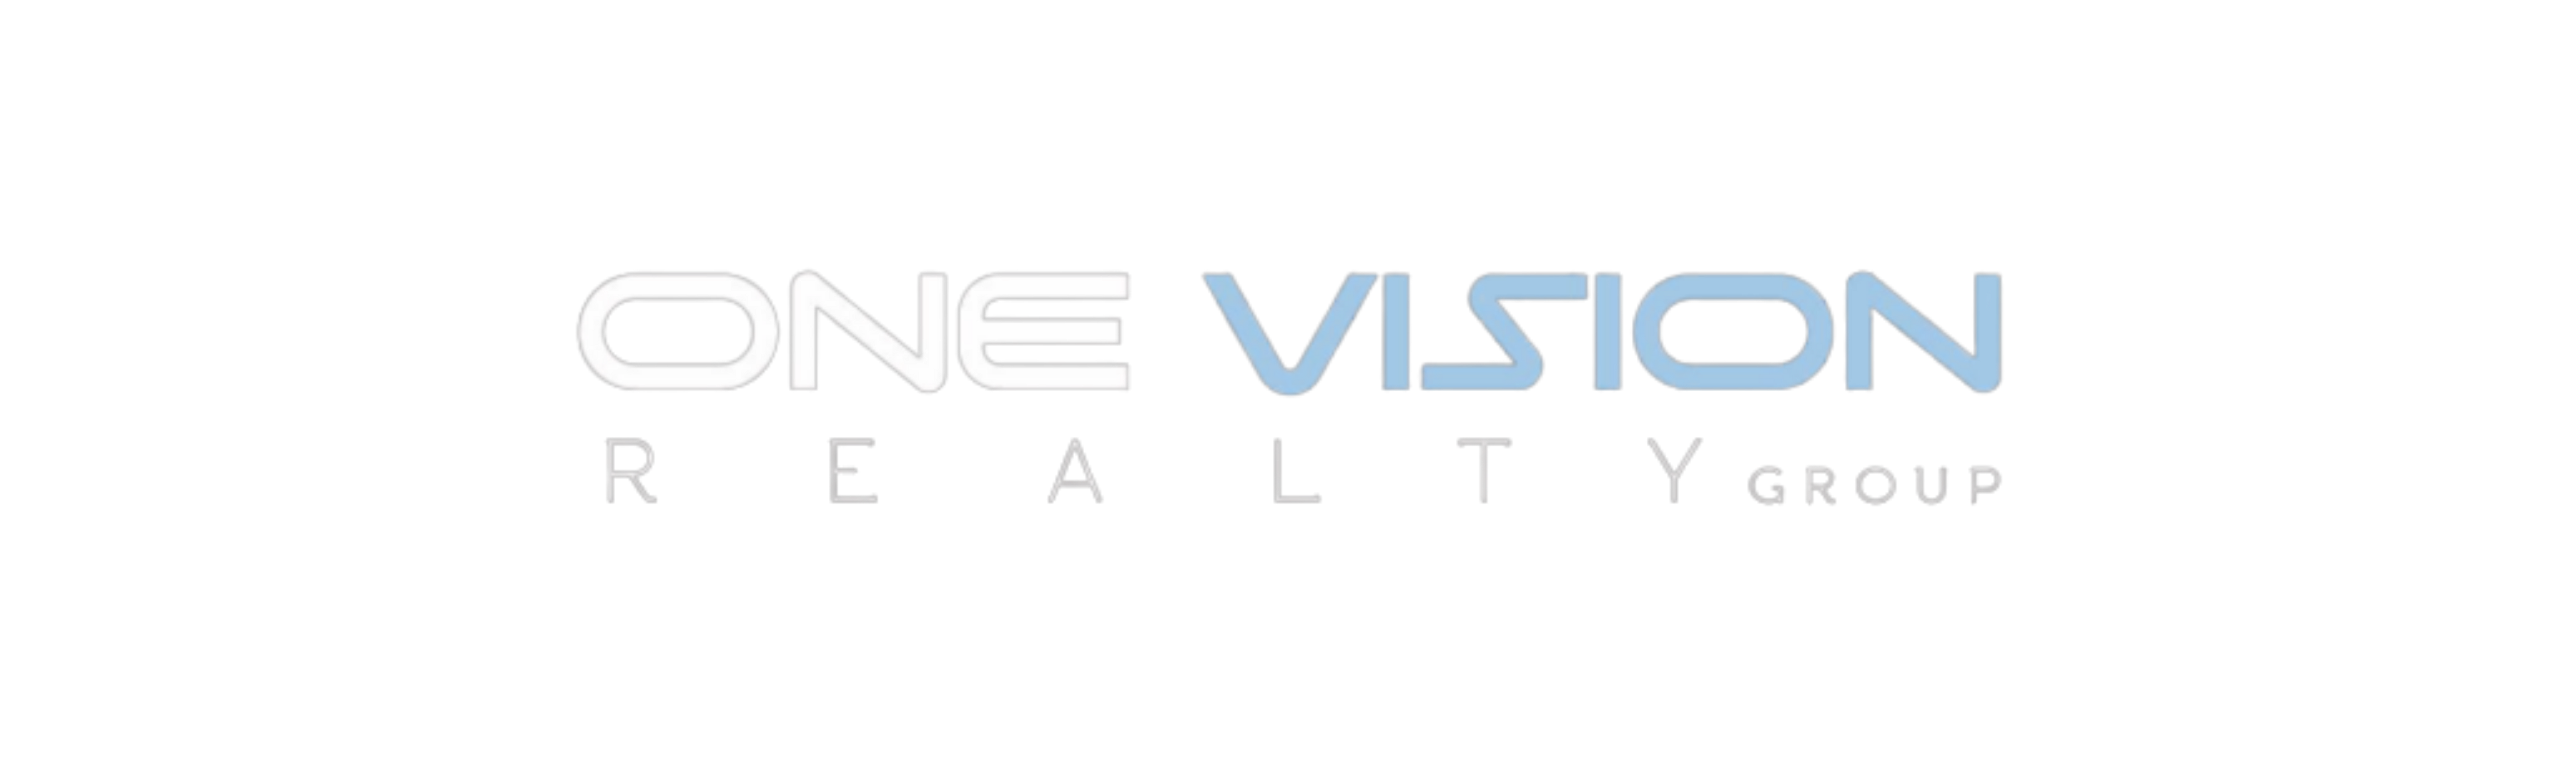 One Vision Realty Group